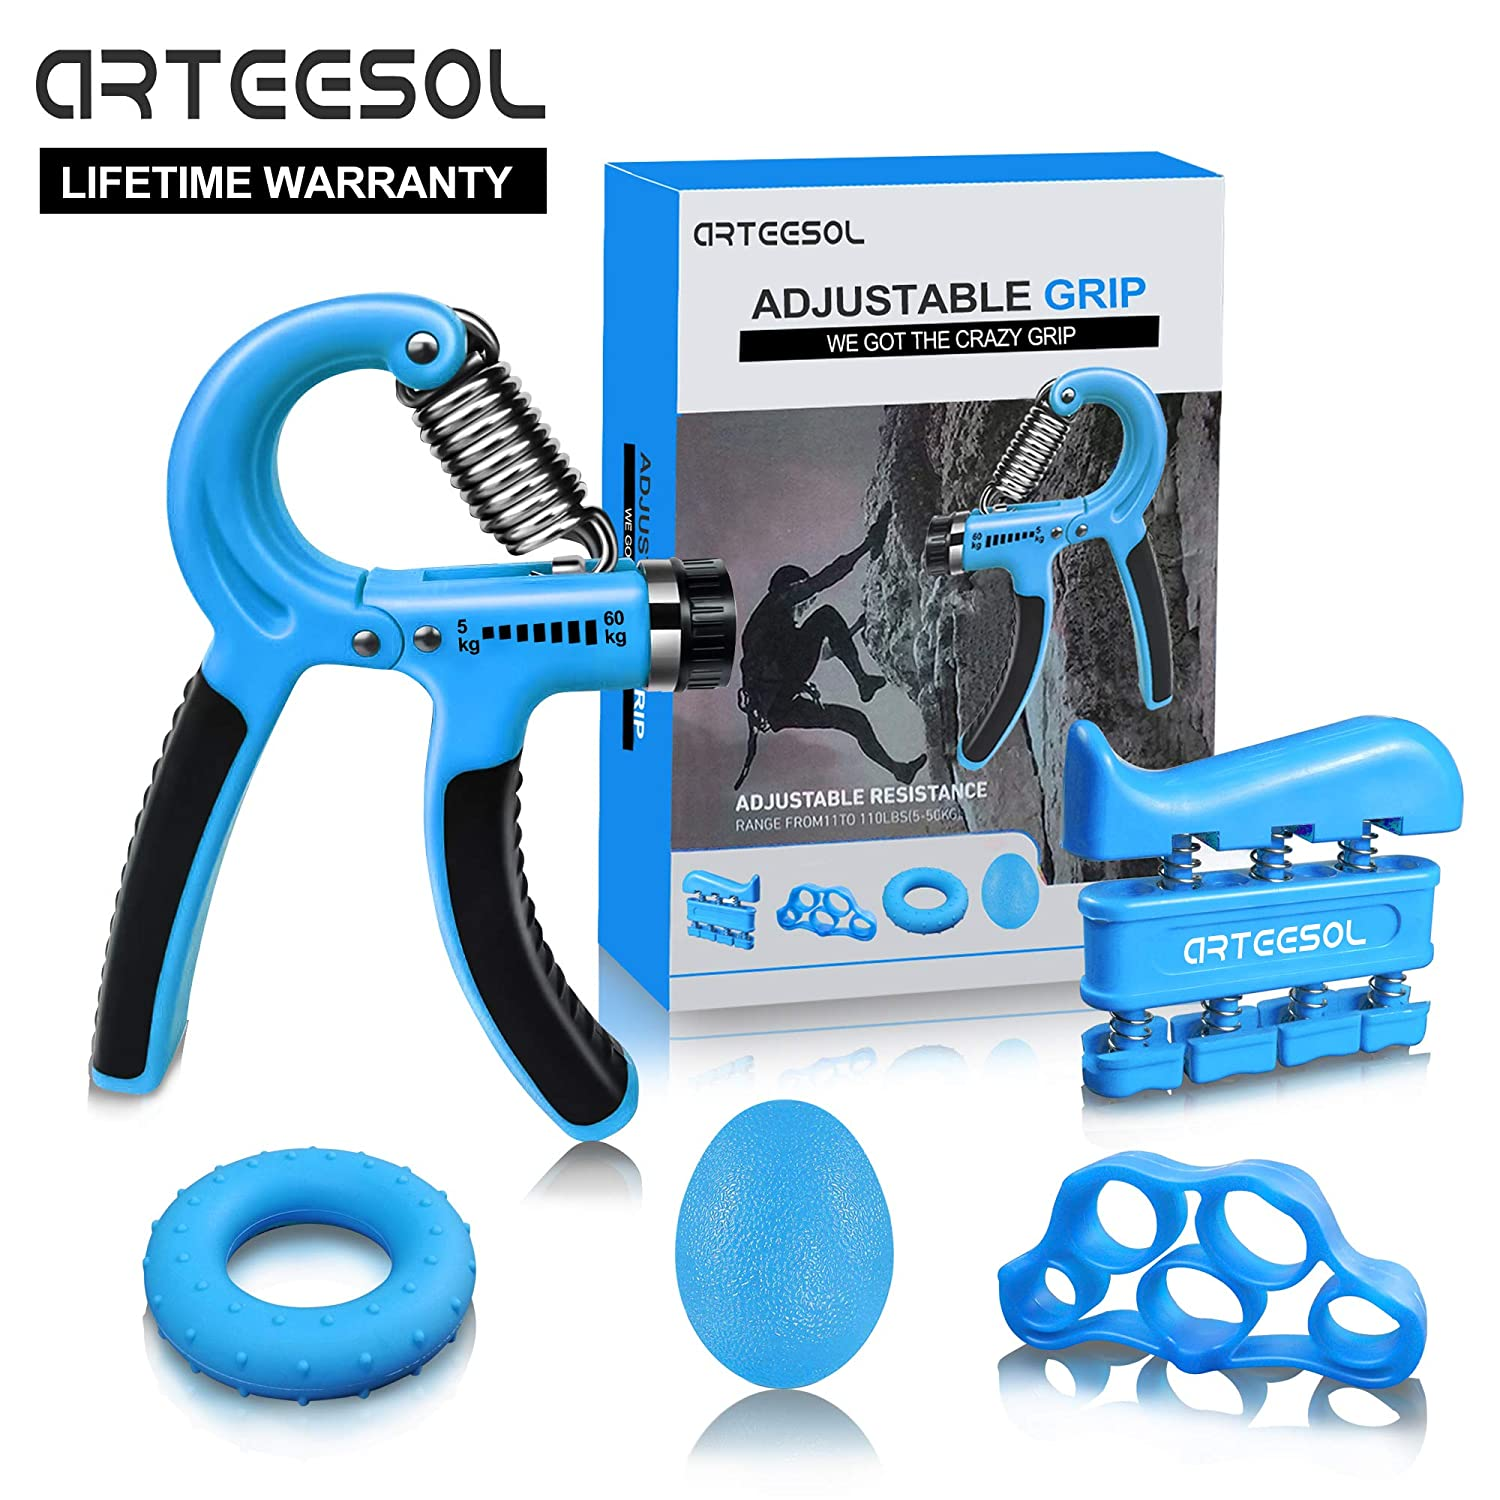 Hand Grip Strengthener, Arteesol Finger Strengthener 5 Pack Adjustable Resistance 11-132lbs-Finger Exerciser,Finger Stretcher Hand Therapy Forearm Therapy Exerciser for Unisex(Blue)